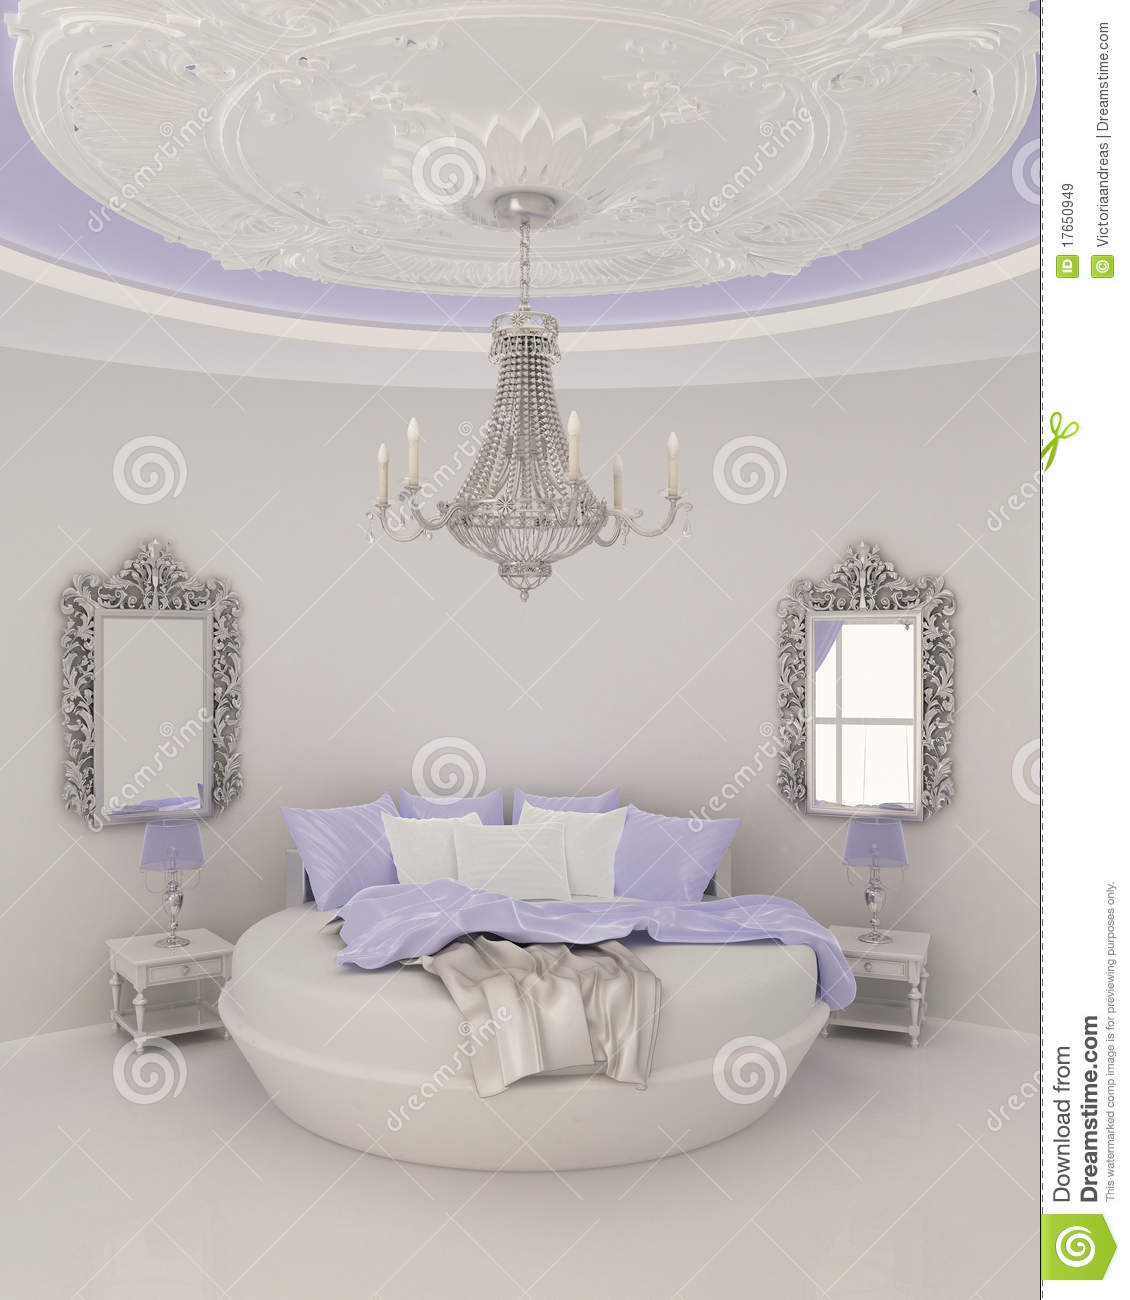 Ceiling Decor In Modern Bedroom Stock Illustration Image